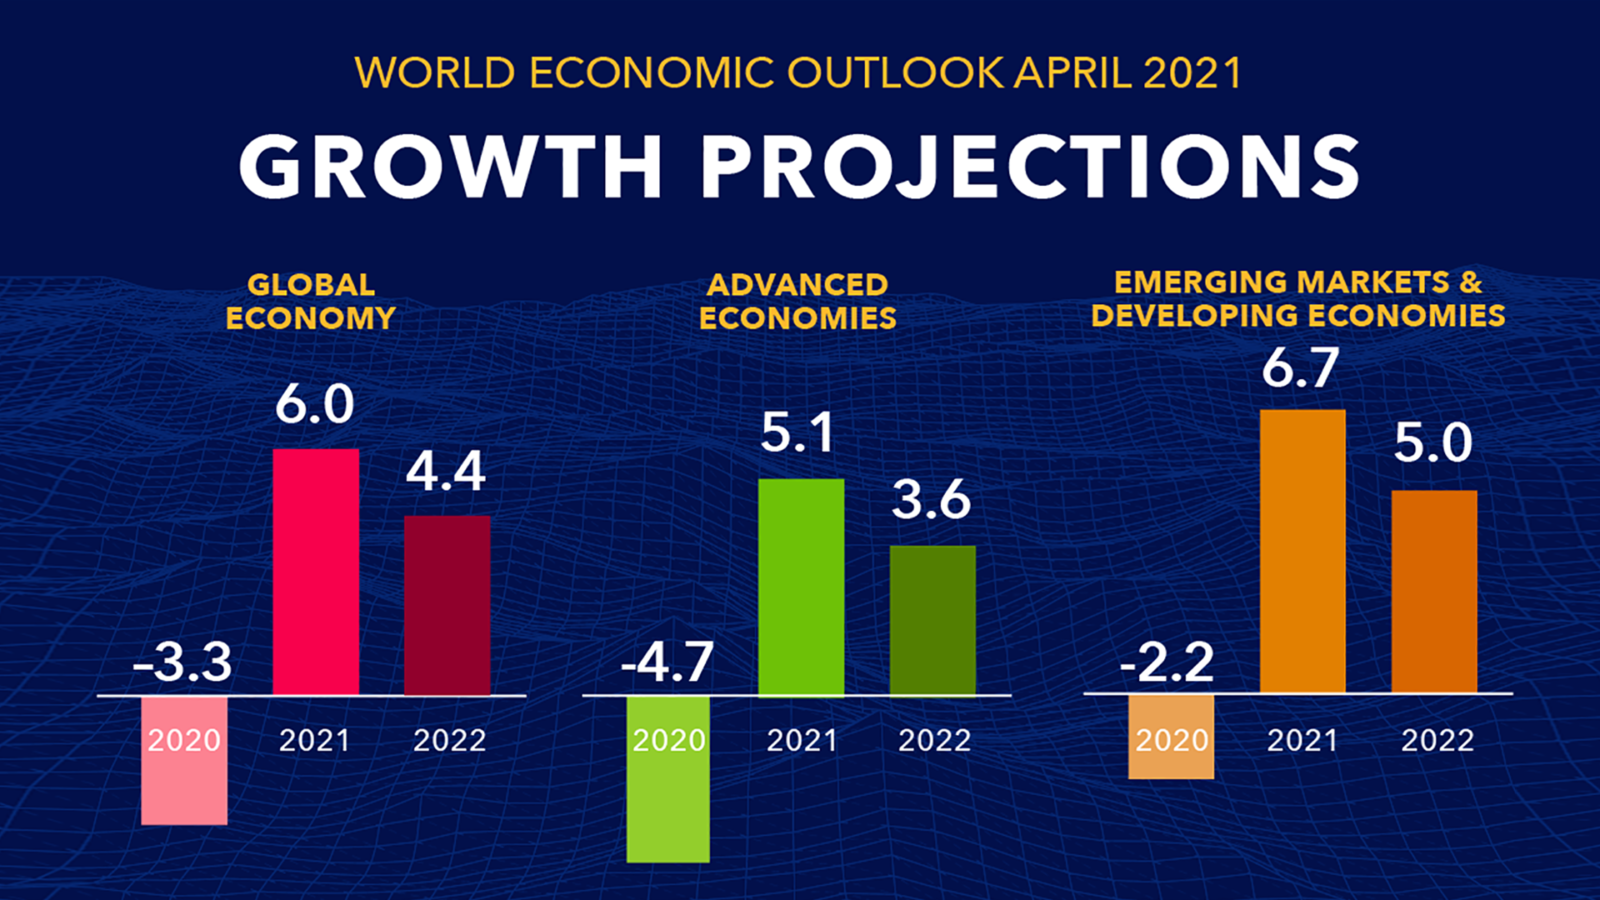 IMF Predicts 3.4% Growth for Sub-Saharan Africa Economy in  2021